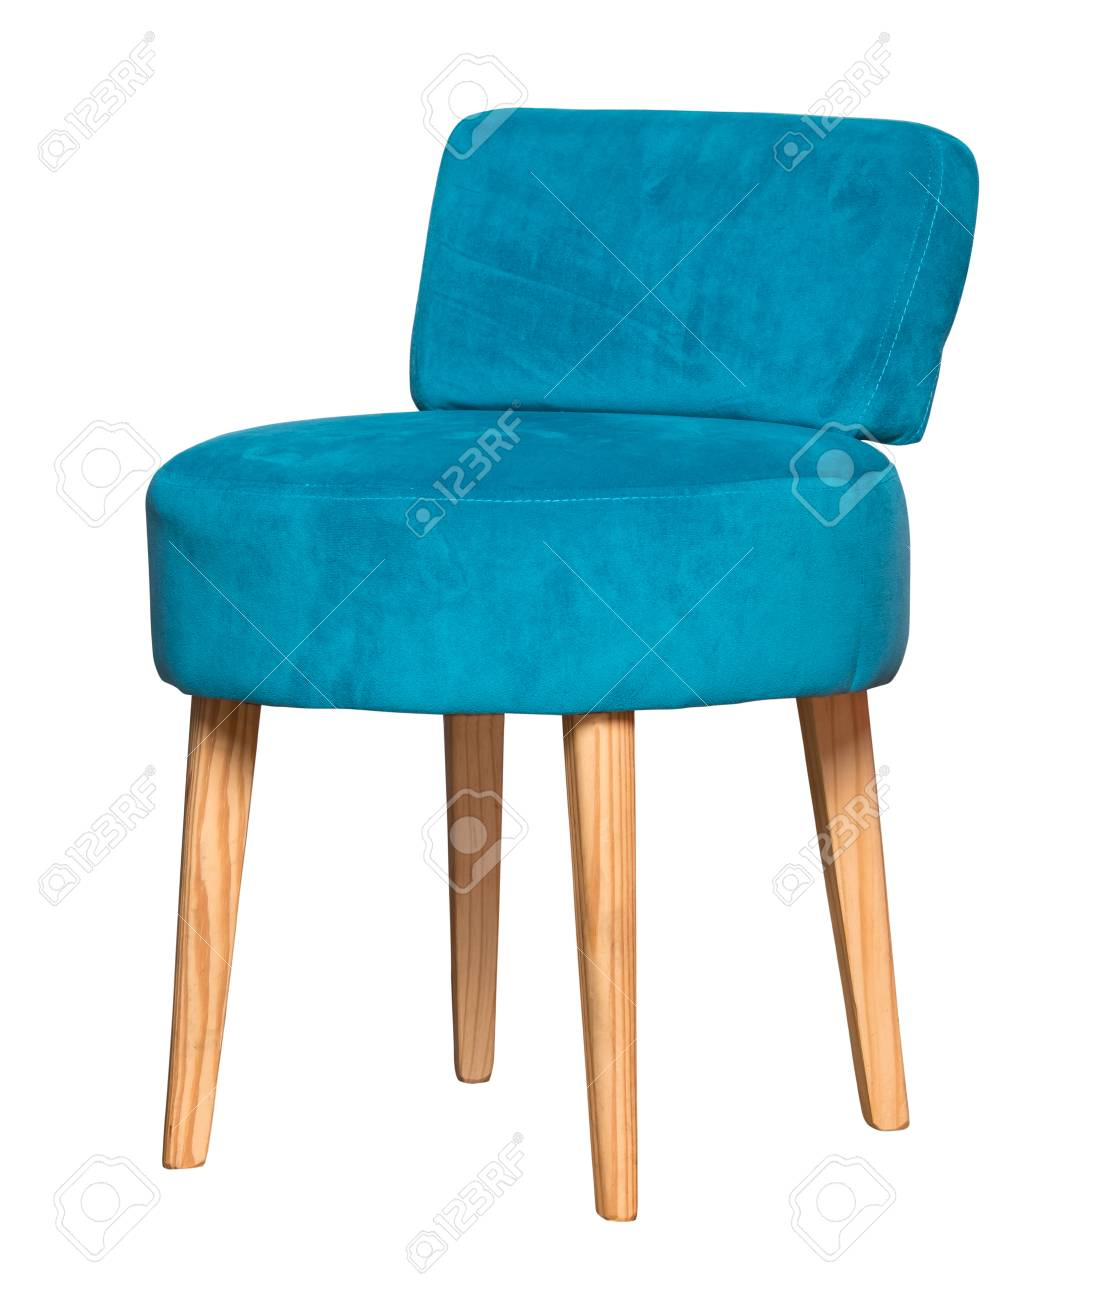 Small Stool Chair Small Textile Blue Chair Stool Isolated On White Background